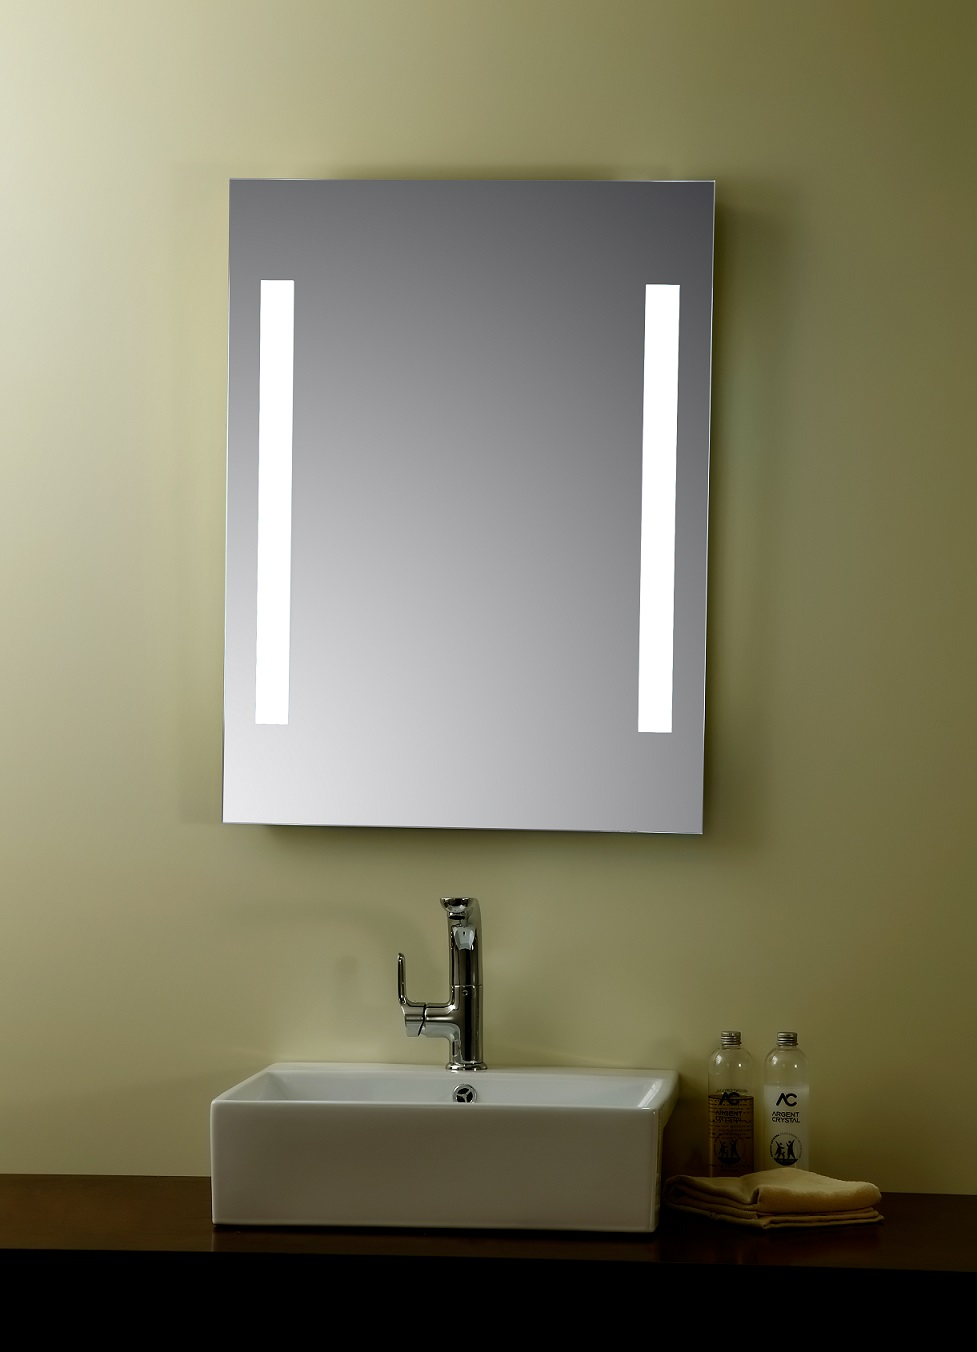 Livorno lighted vanity mirror led bathroom mirror for Bathroom vanity mirrors